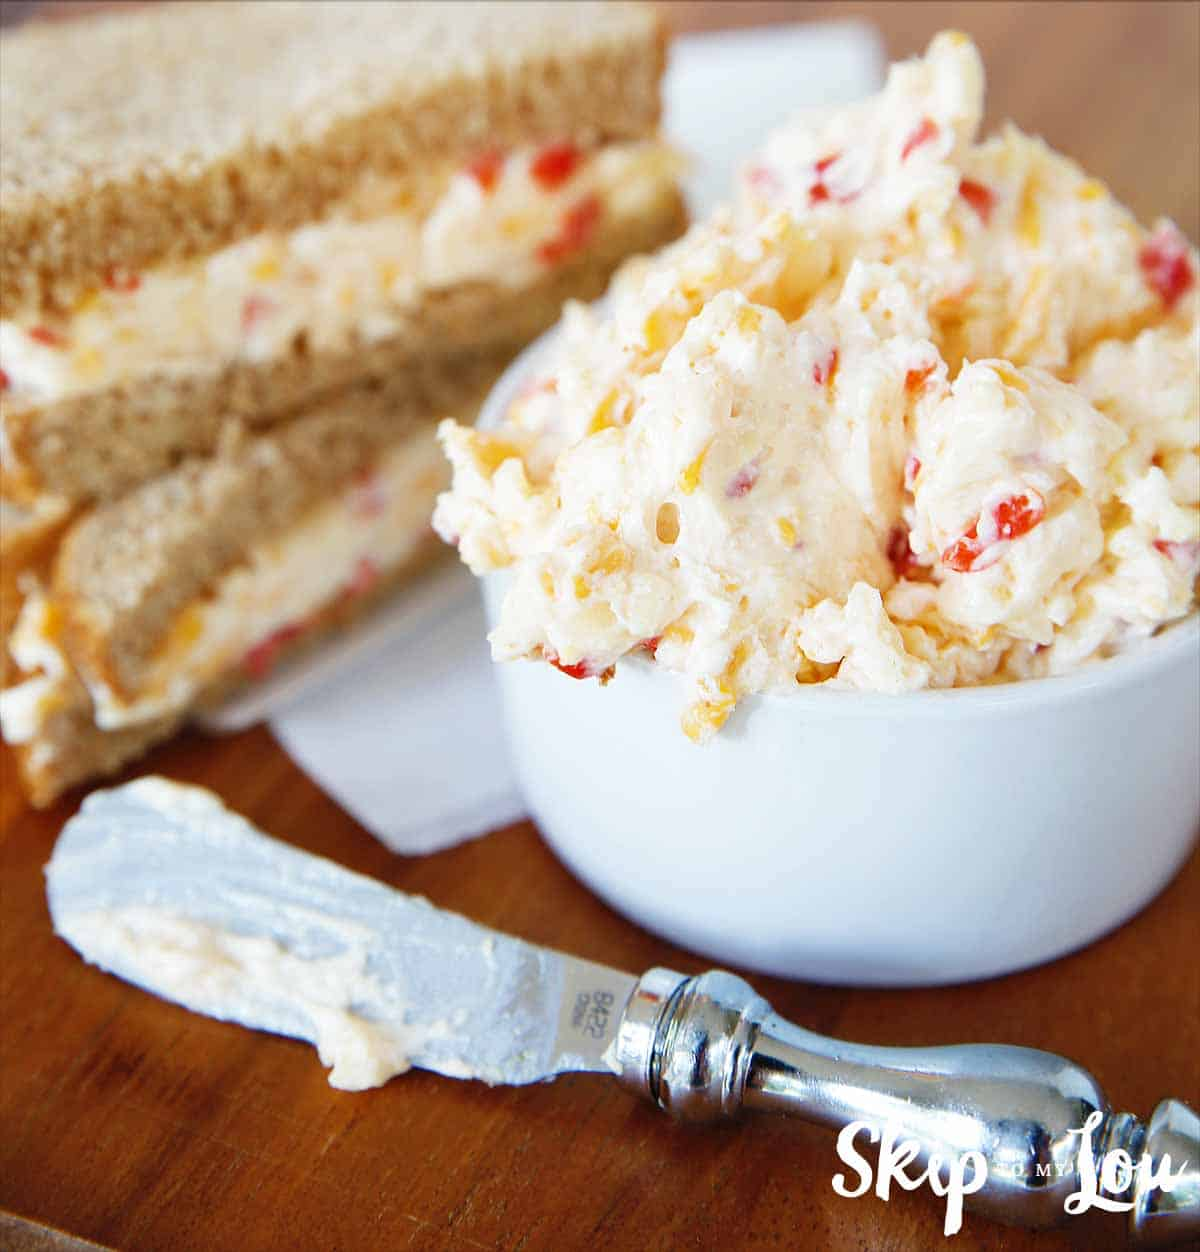 Pimento Cheese So Easy And Delicious To Make Skip To My Lou